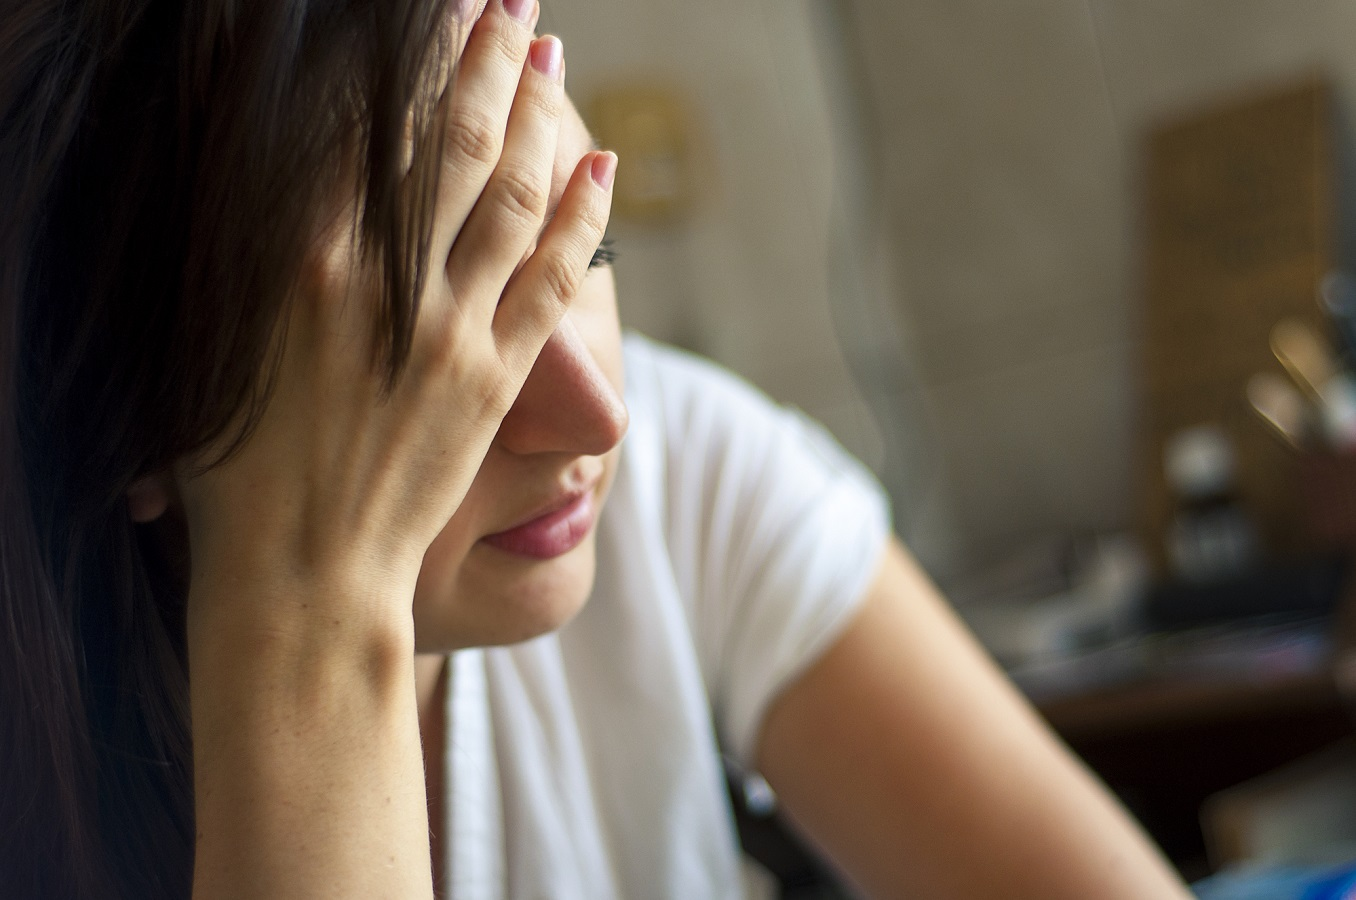 Woman feeling overwhelmed, holding head in hands